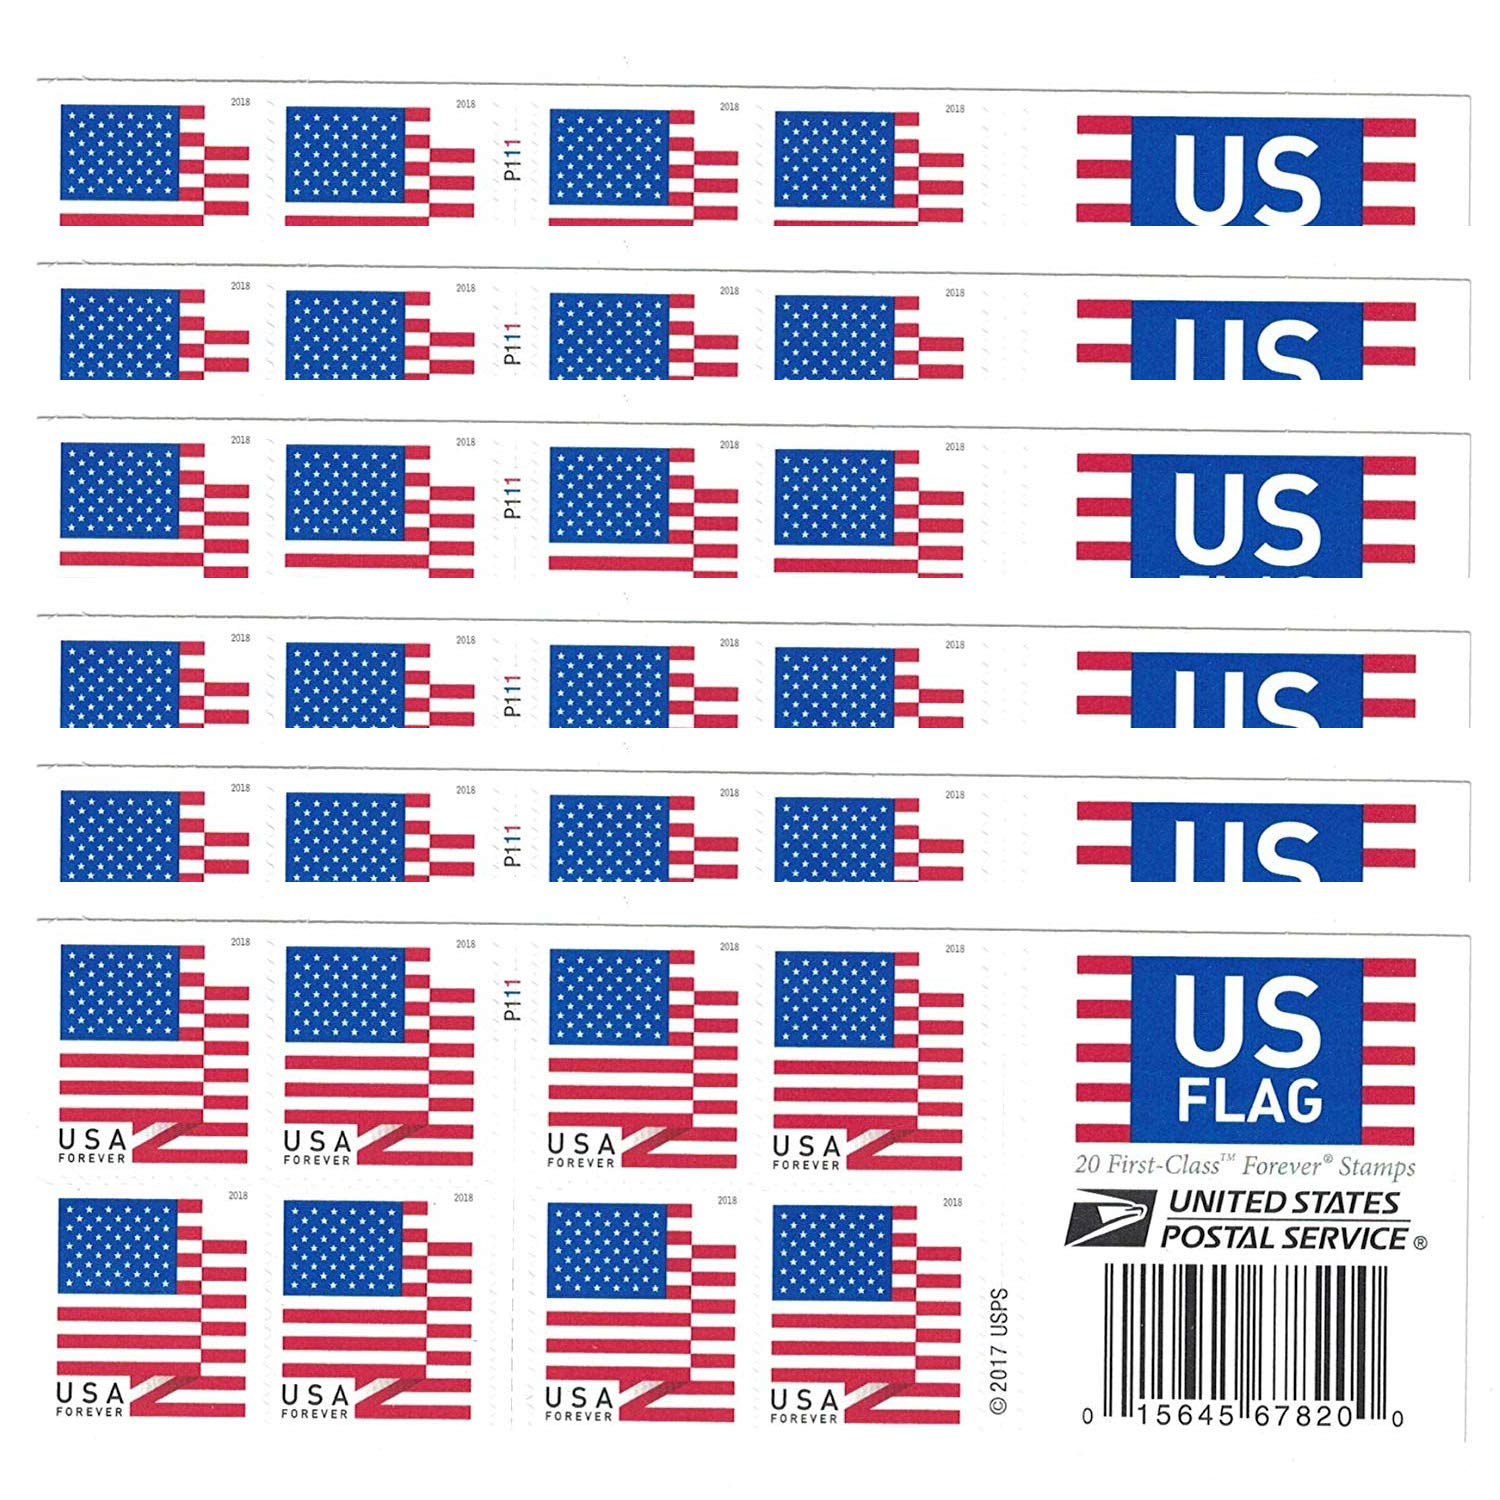 USPS US Flag 2018 Forever Stamps (Book of 120)